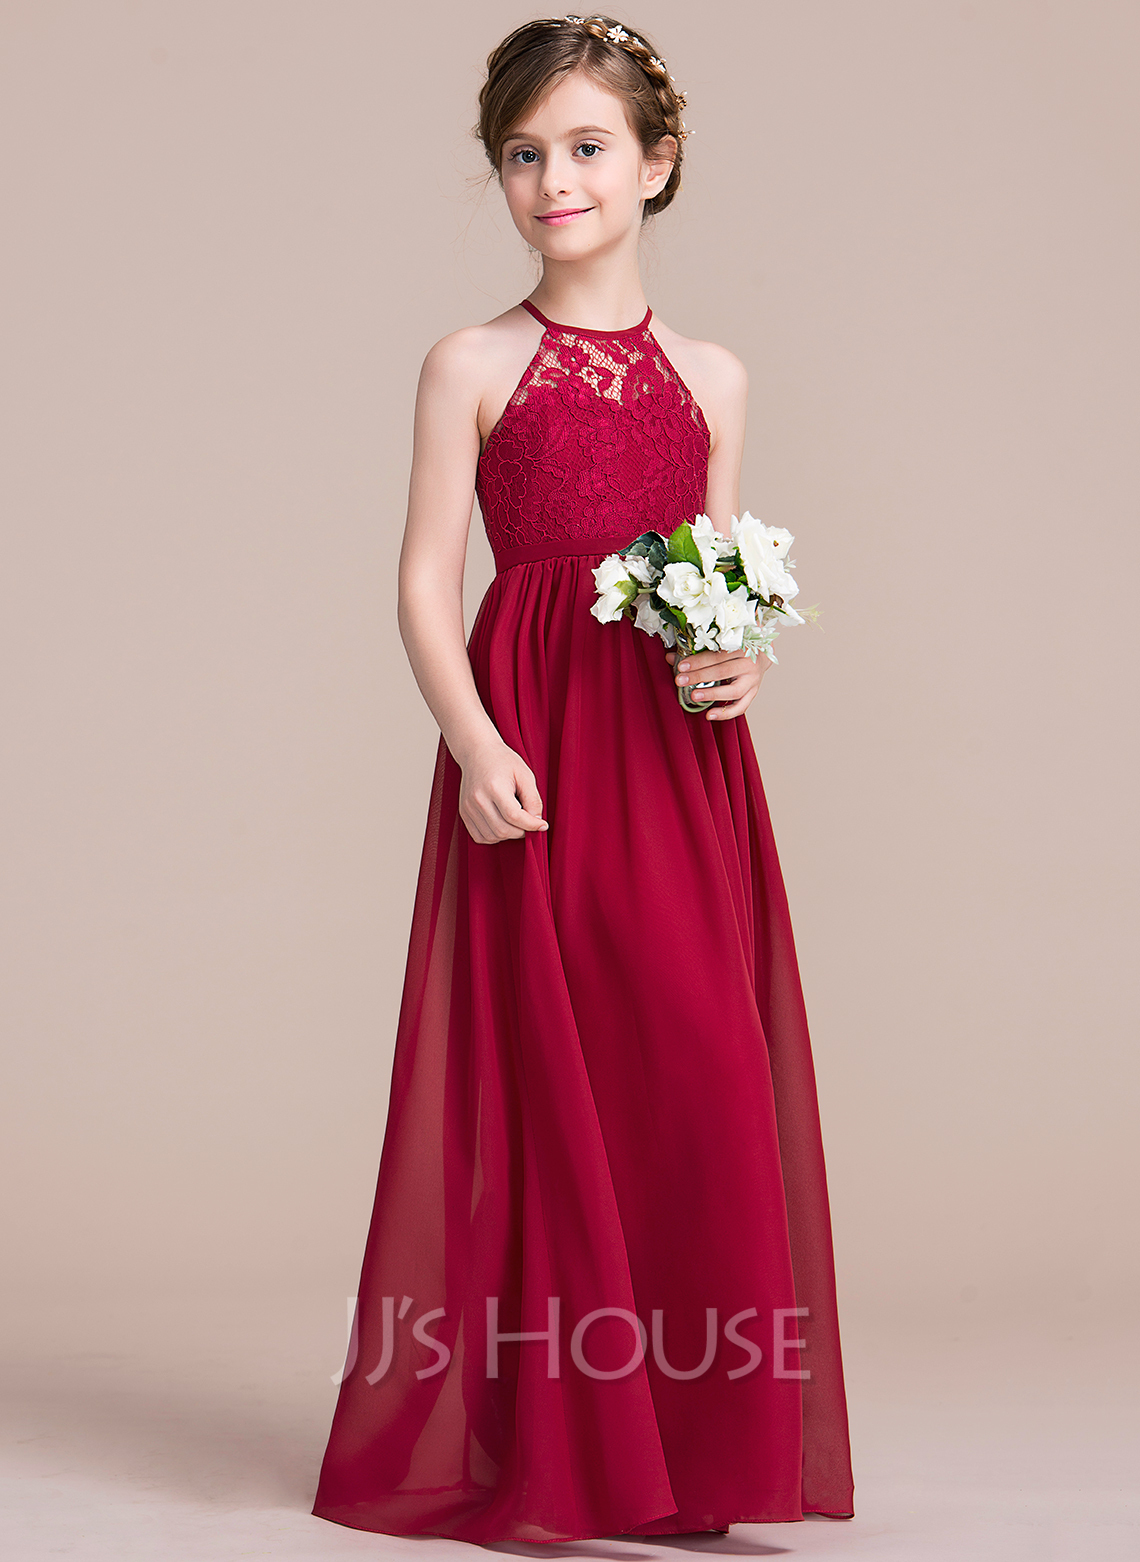 Find affordable flower girl dresses jjshouse a lineprincess floor length flower girl dress chiffonlace sleeveless izmirmasajfo